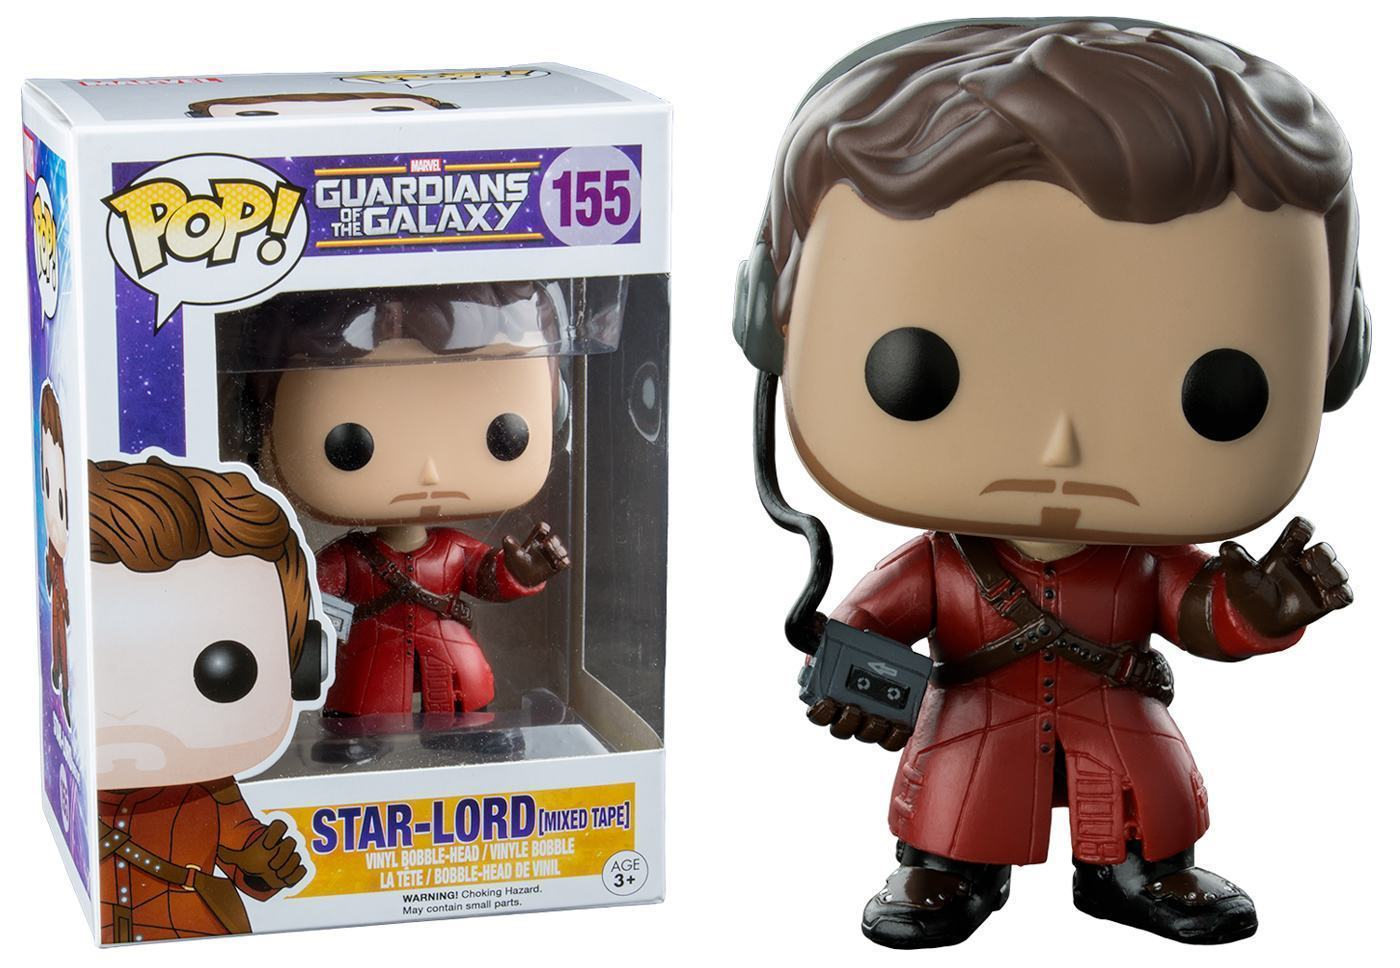 Star-Lord-Unmasked-with-Walkman-Pop-Bobble-Head-Figure-02